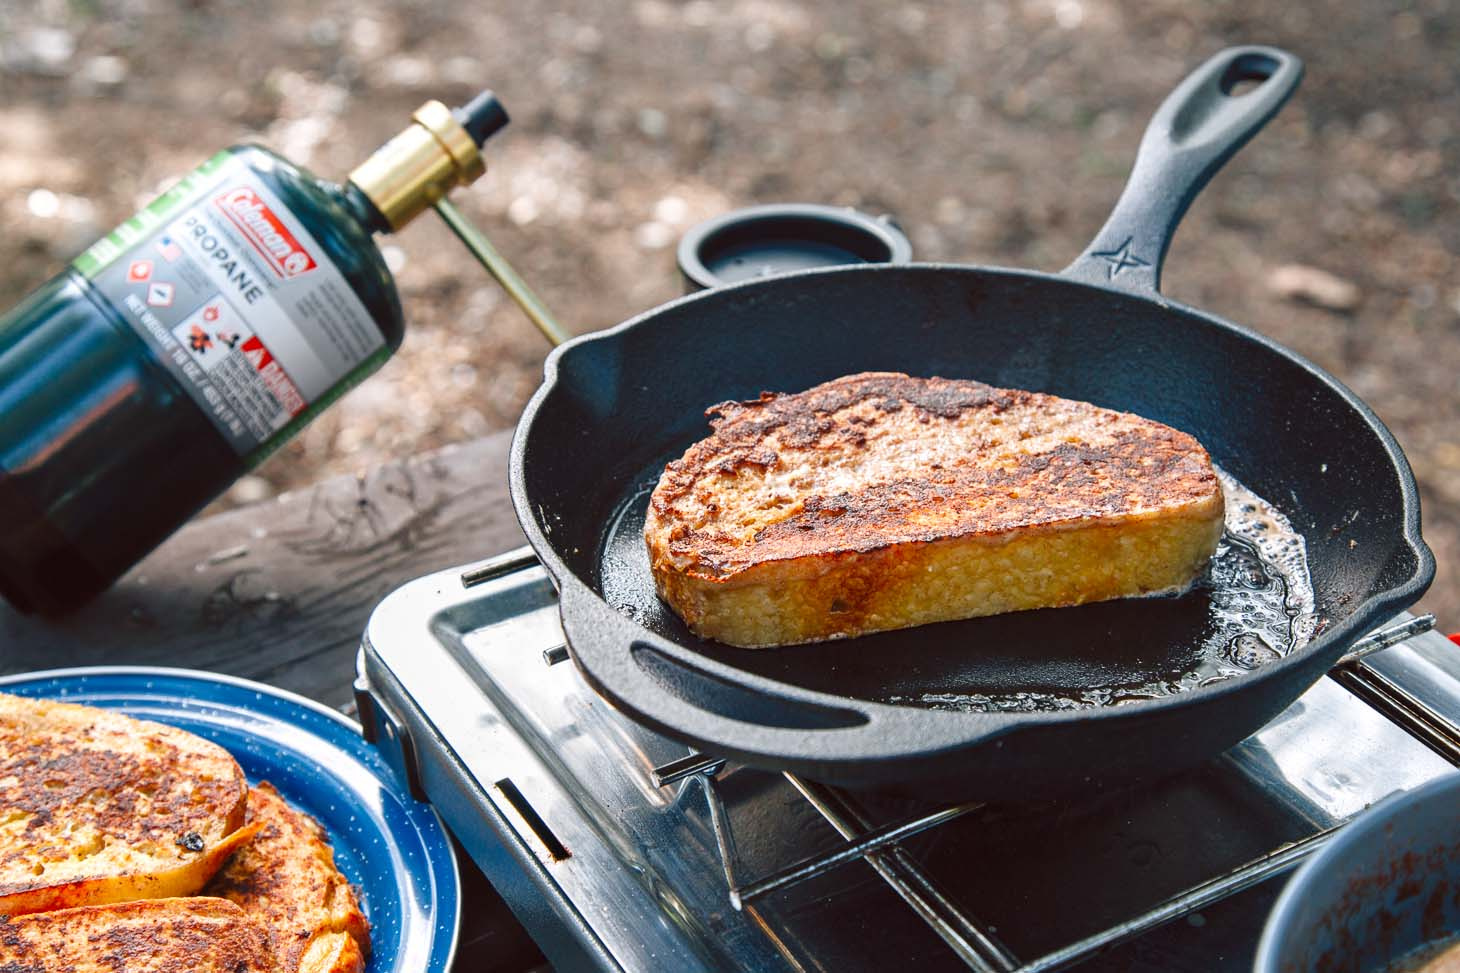 A slice of french toast in a skillet on a camp stove